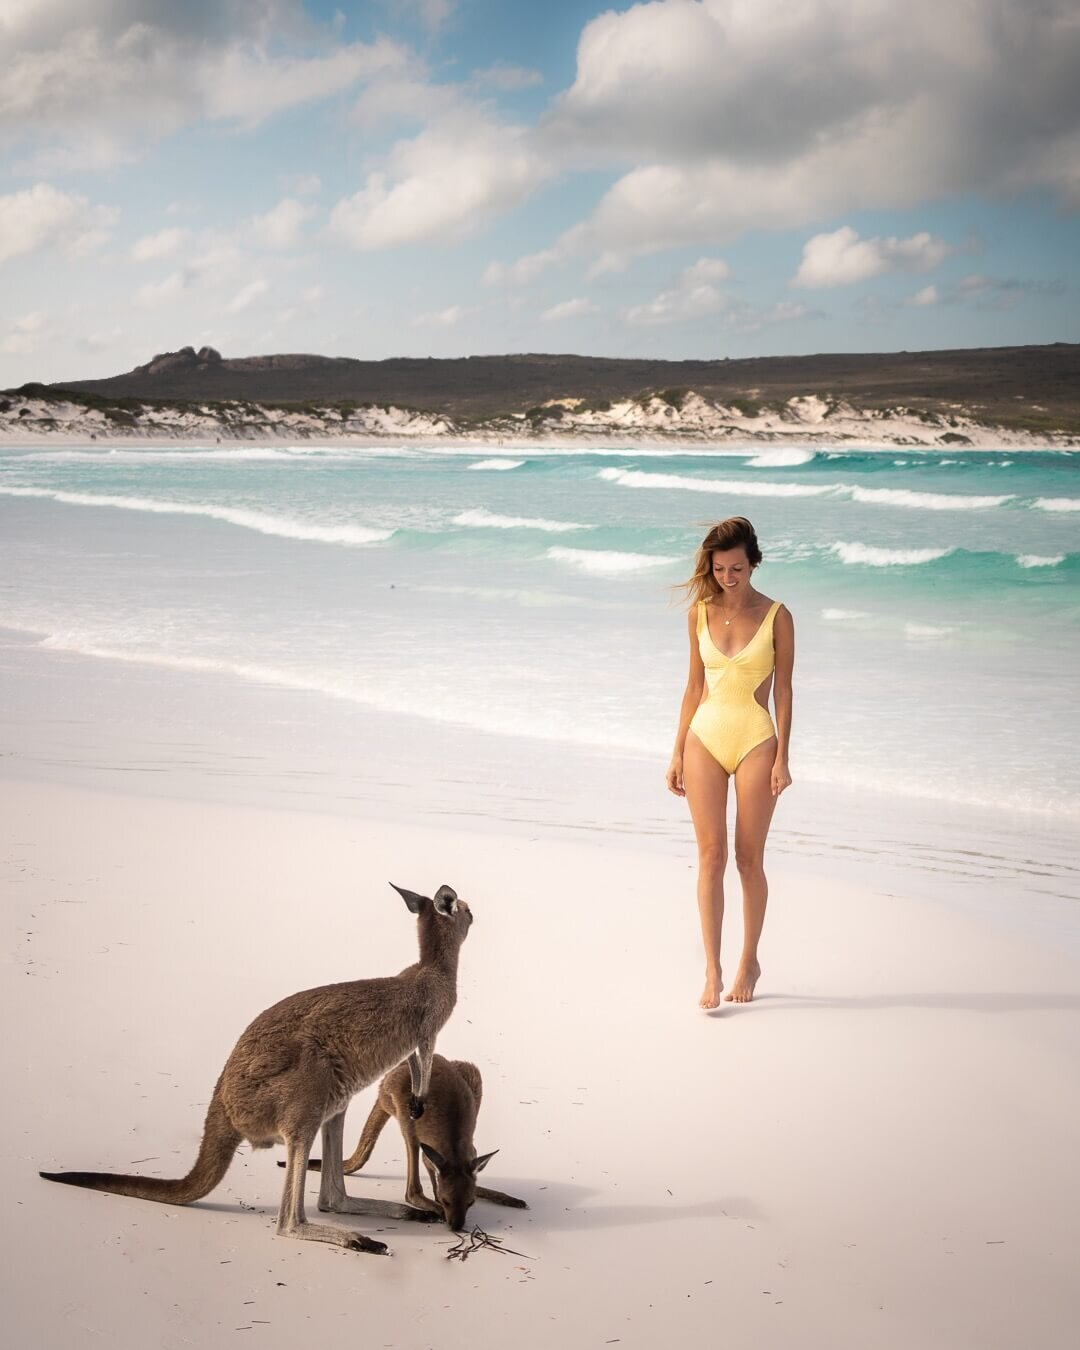 The wild kangaroos at Lucky Bay Beach. Wearing: L Space  Monaco One-Piece Swim Suit